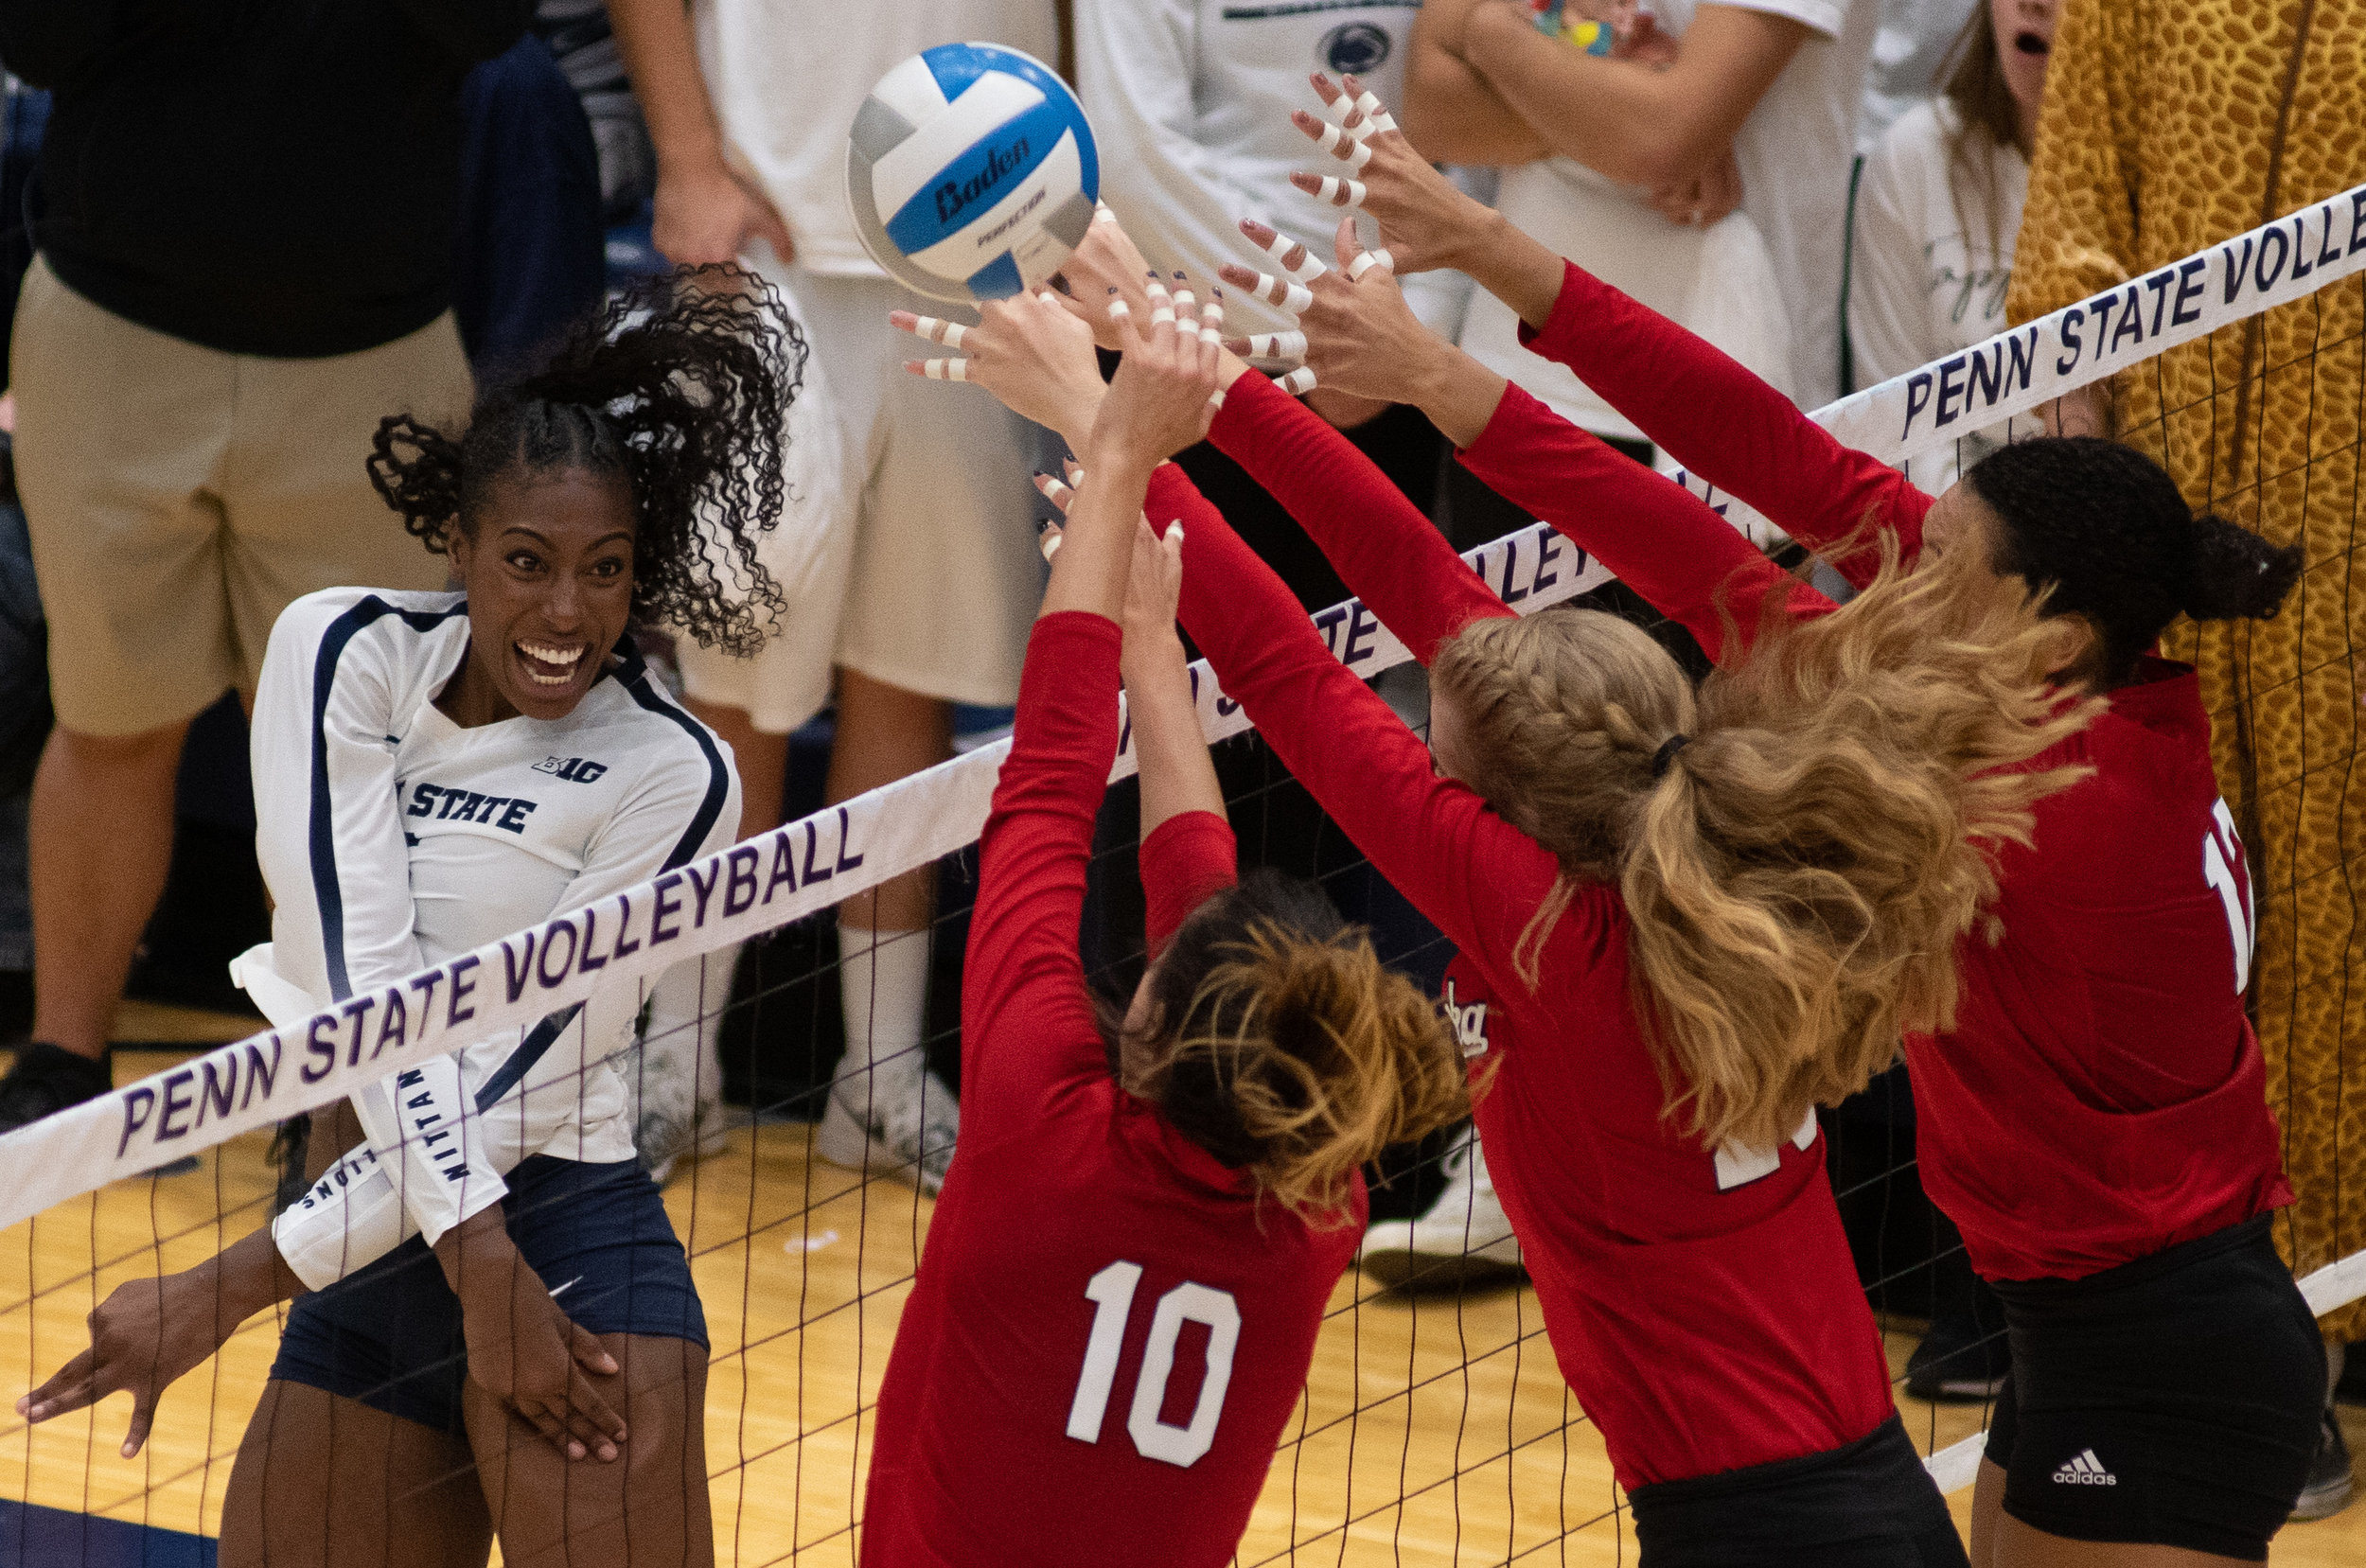 Outside hitter Nia Reed (6) spikes the ball during the game against Nebraska at Rec Hall on Saturday, October 13, 2018. The Nittany Lions defeat Nebraska in 3-2 sets. | Photo by: Noah Riffe